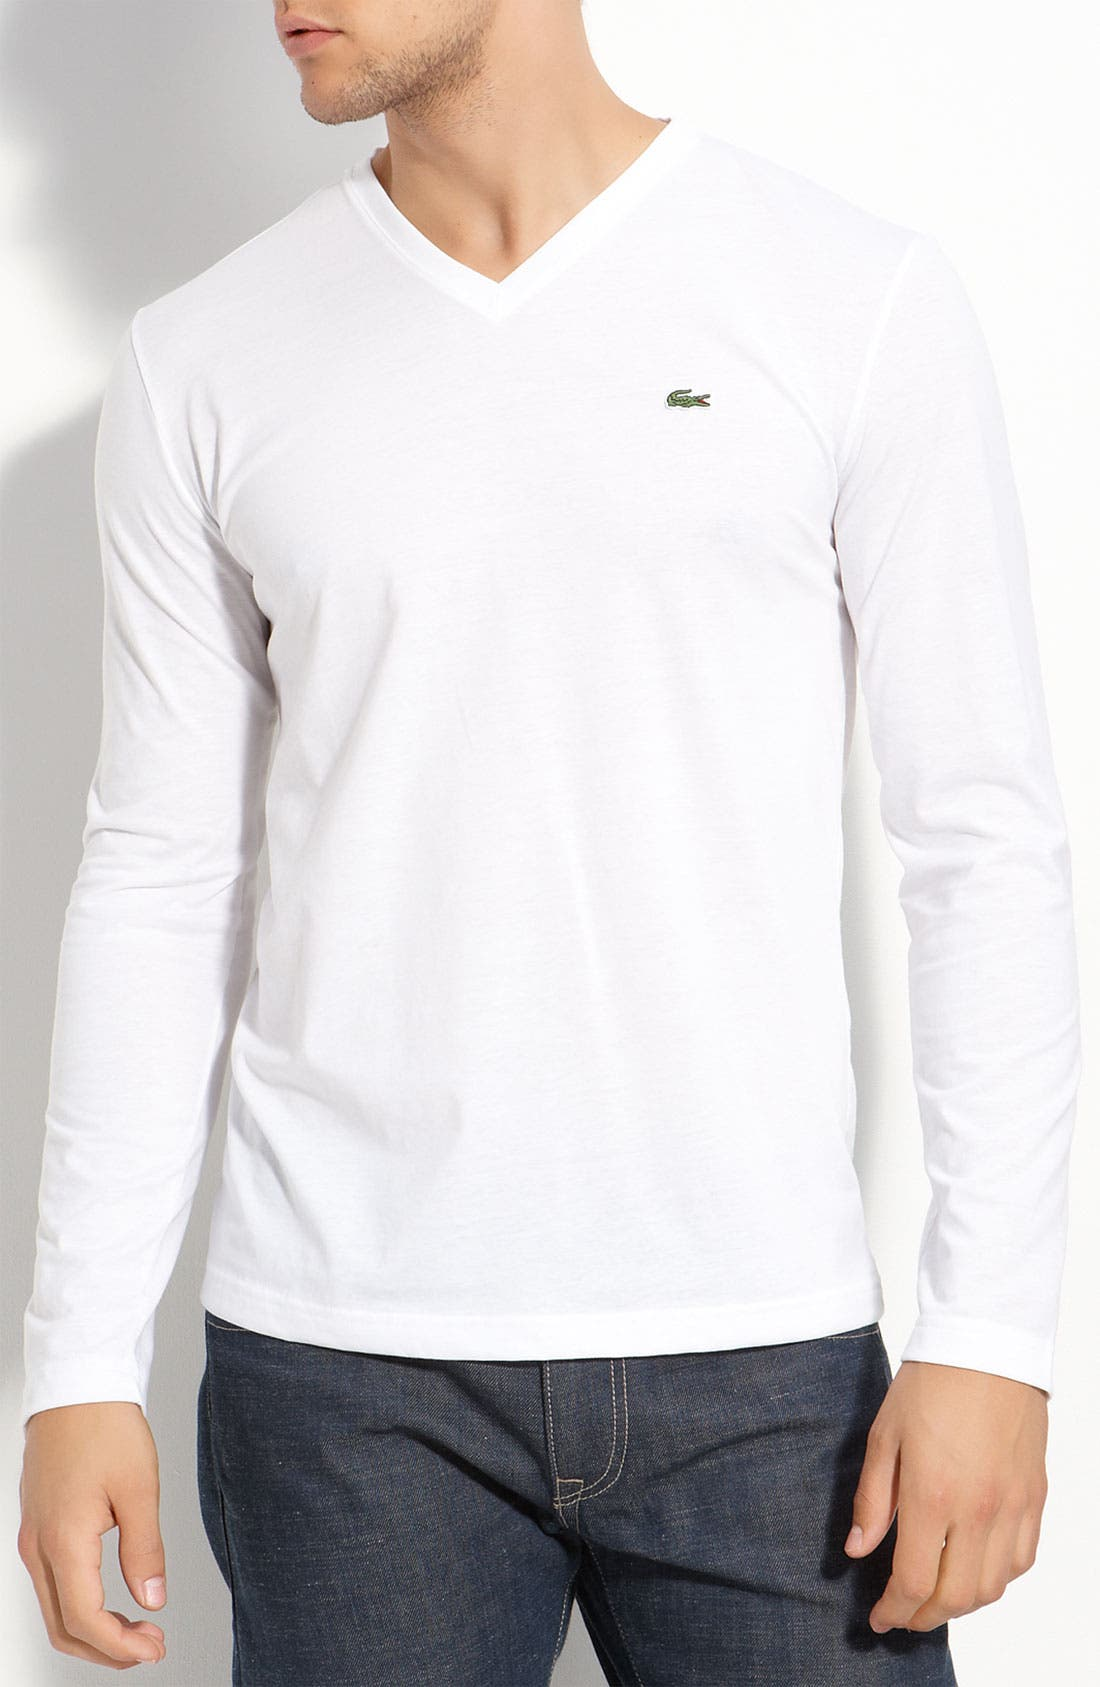 Alternate Image 1 Selected - Lacoste Pima Cotton V-Neck T-Shirt